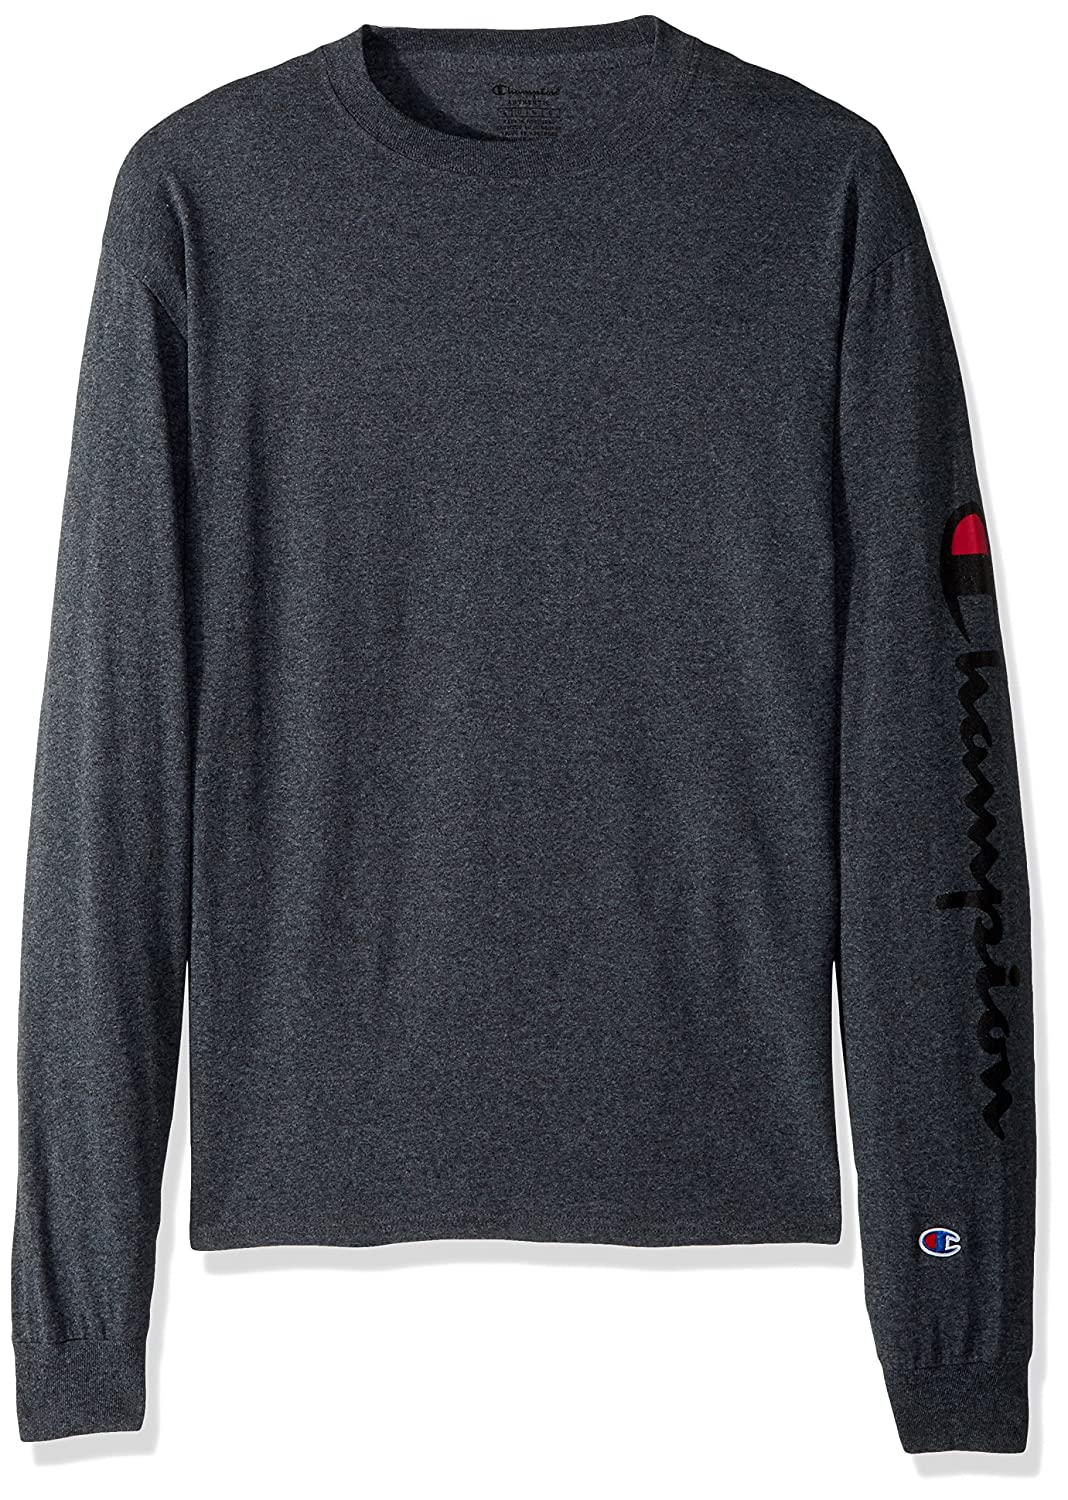 Champion Mens Classic Jersey Long Sleeve Graphic Tee GT286